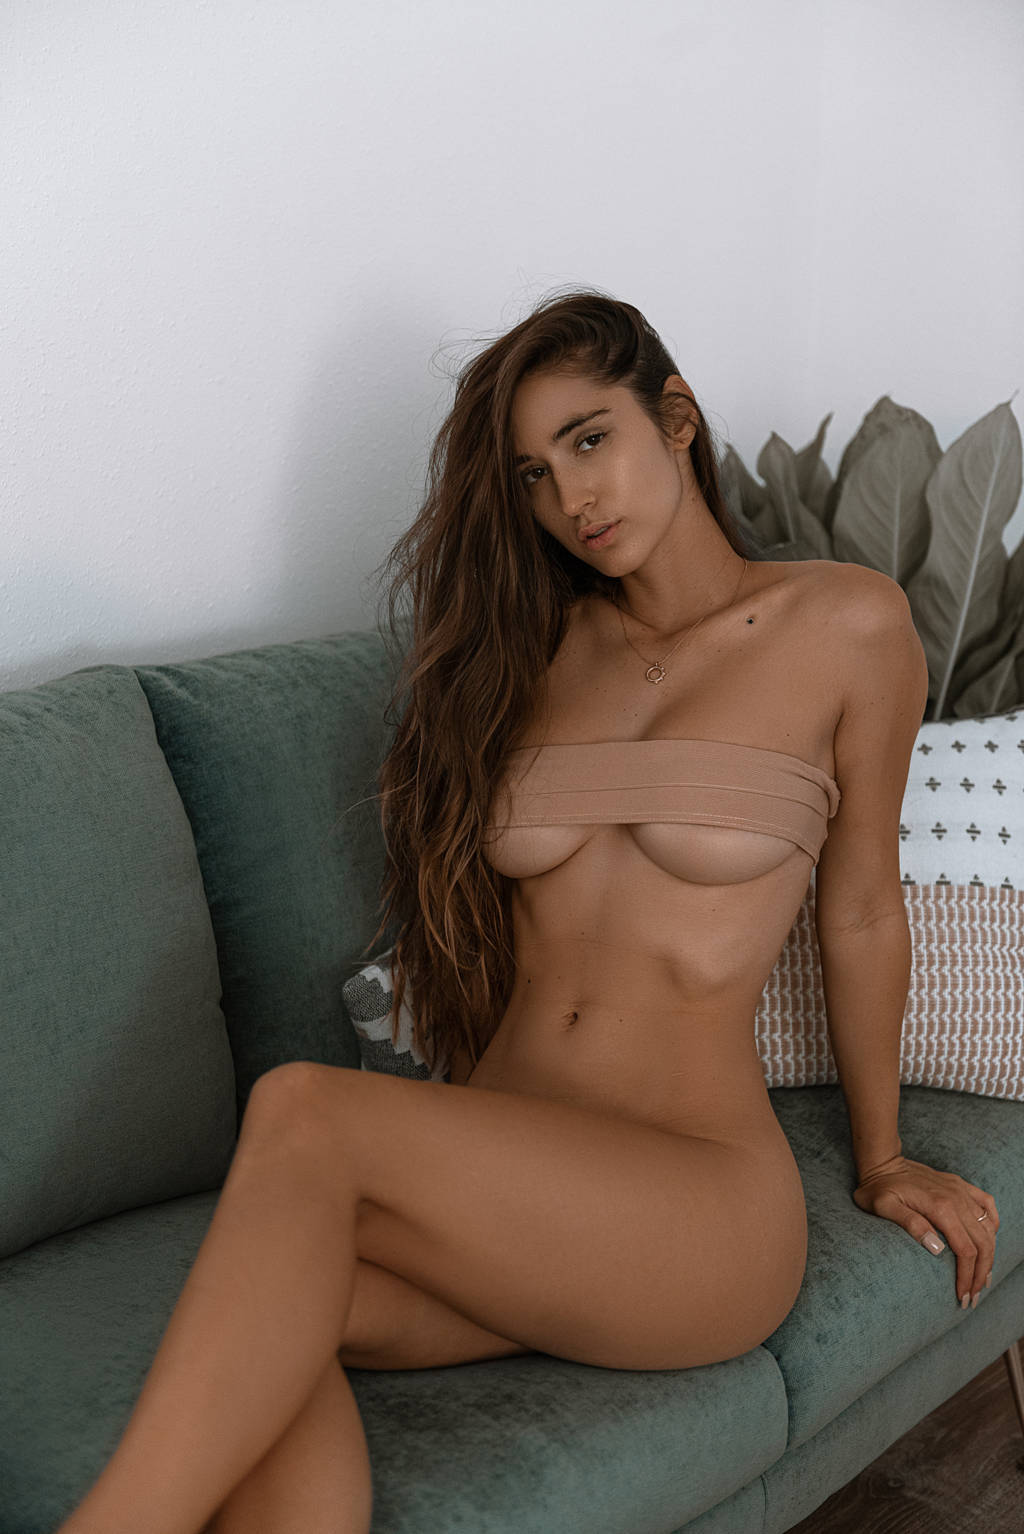 Natalie Roush Nude Leaked Videos and Naked Pics! 91